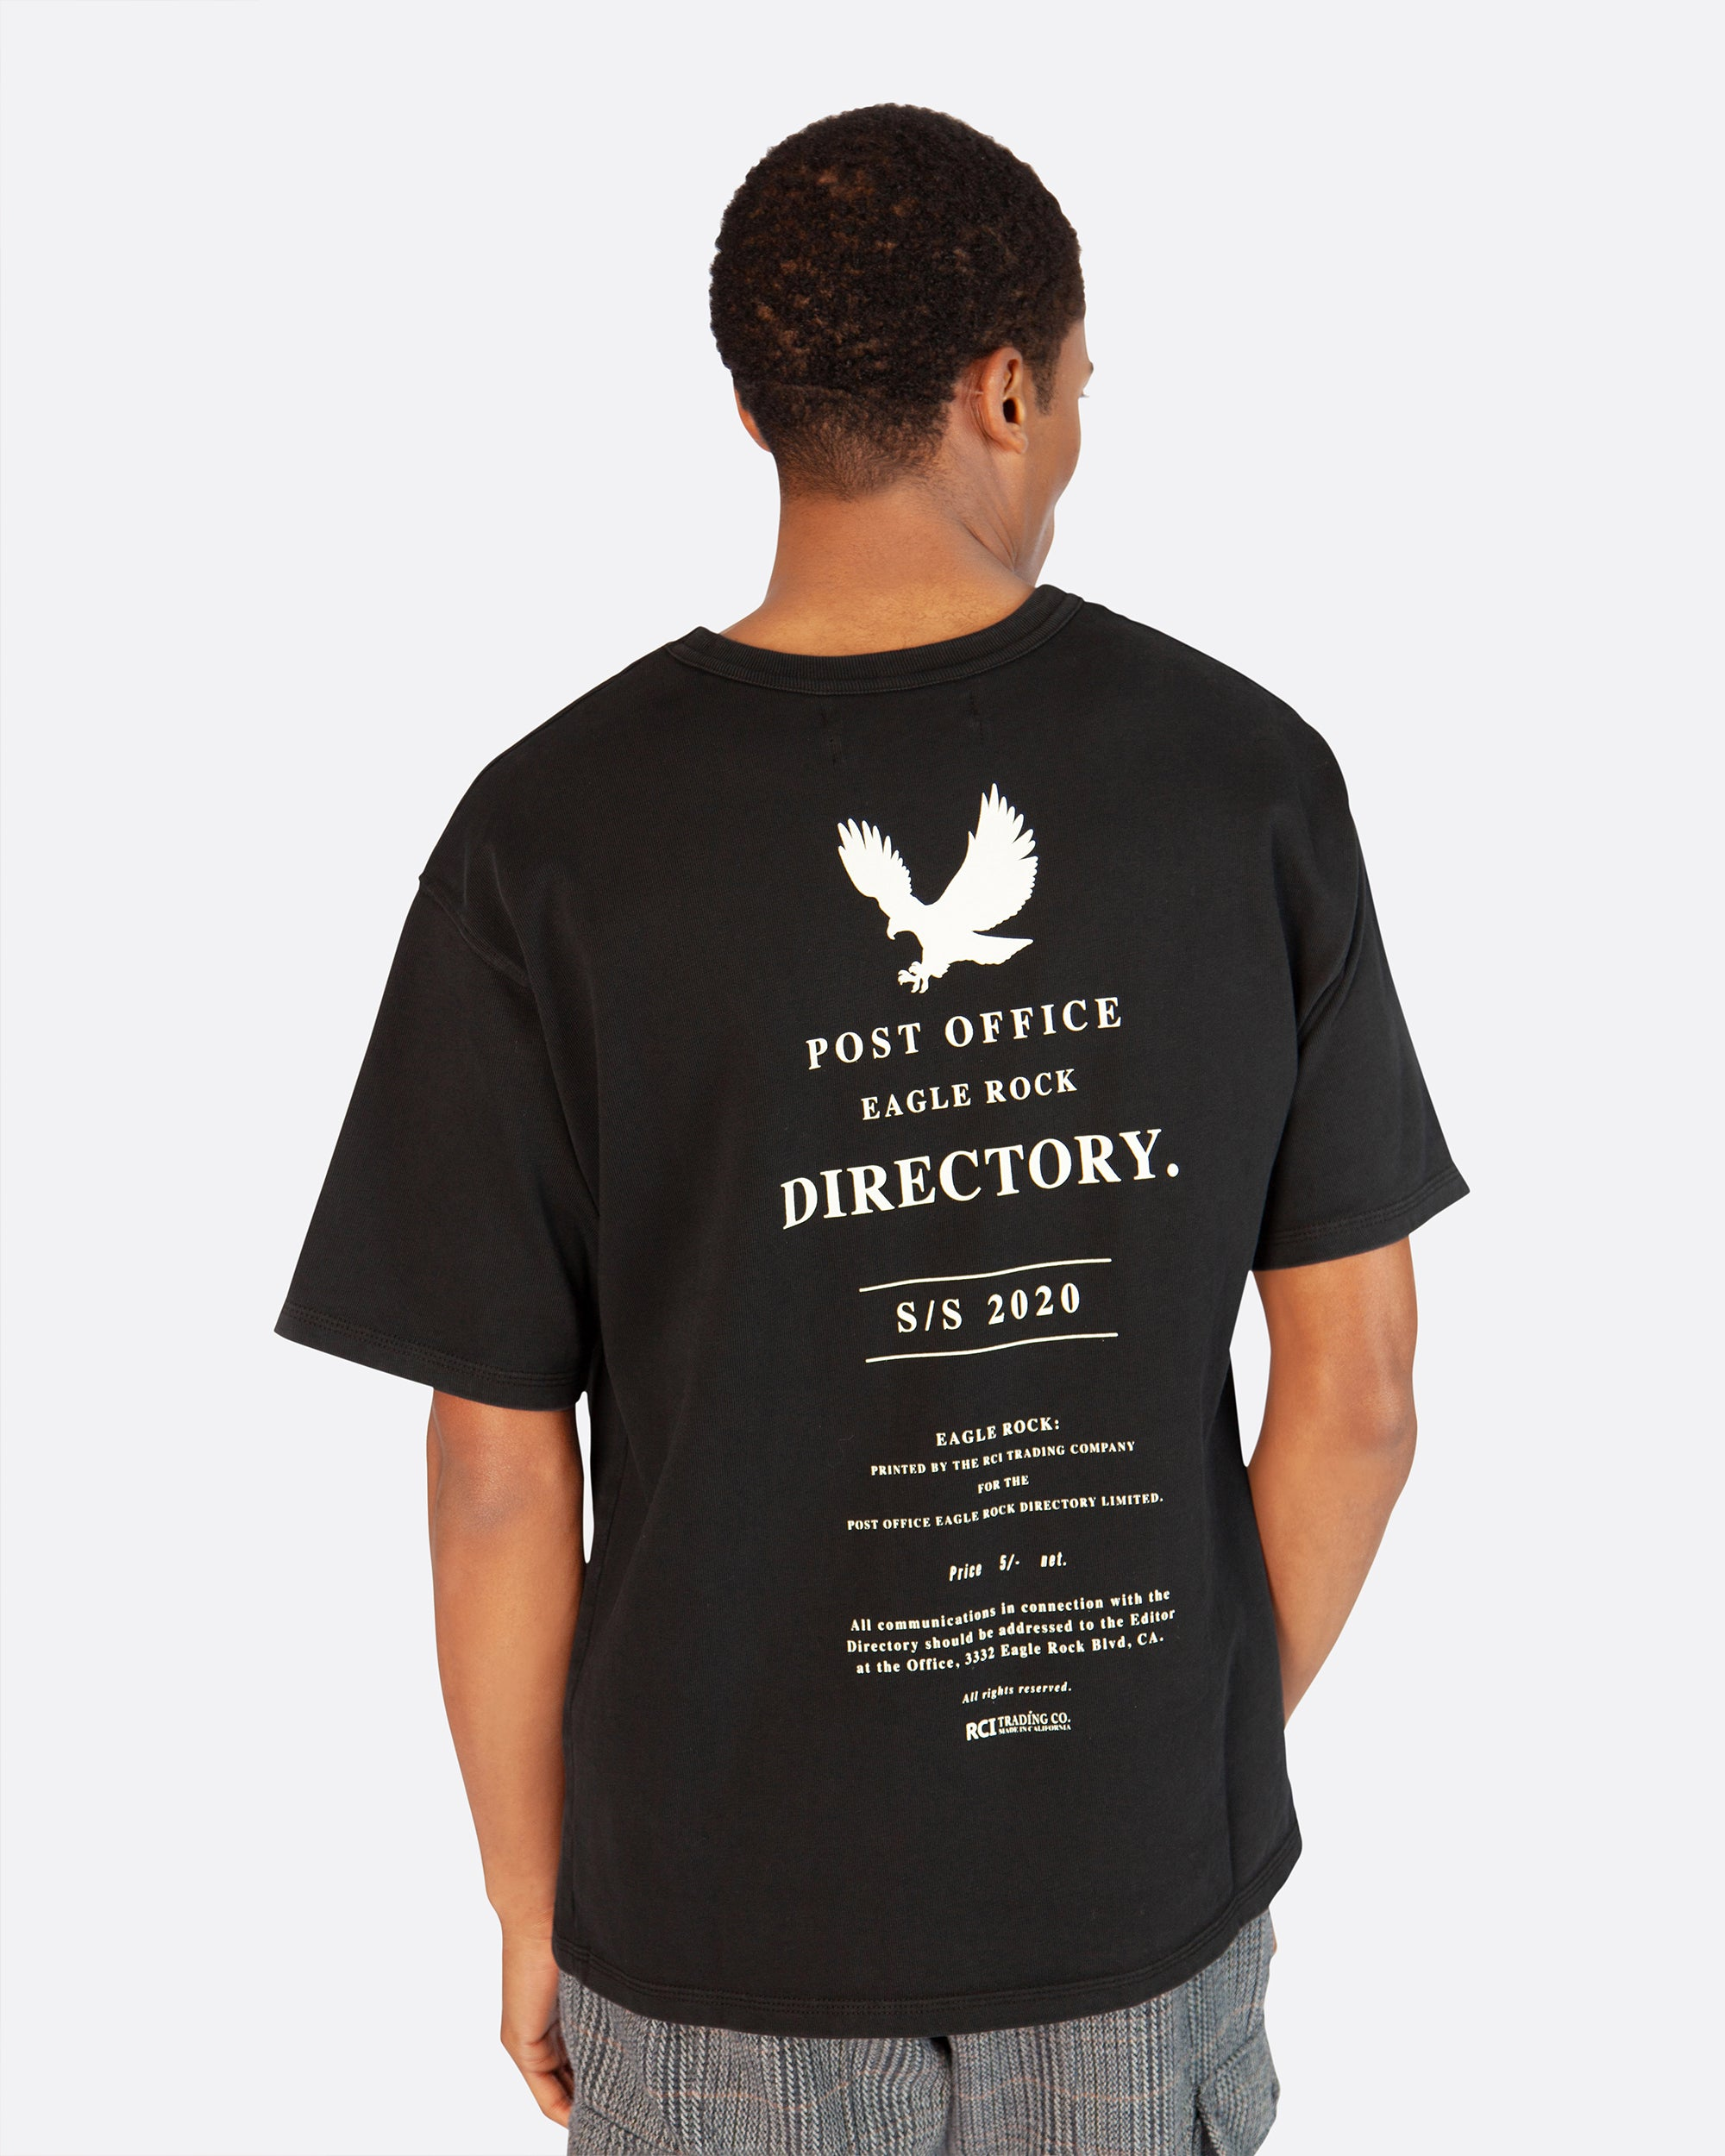 Post Office Directory Tee Shirt in Vintage Black